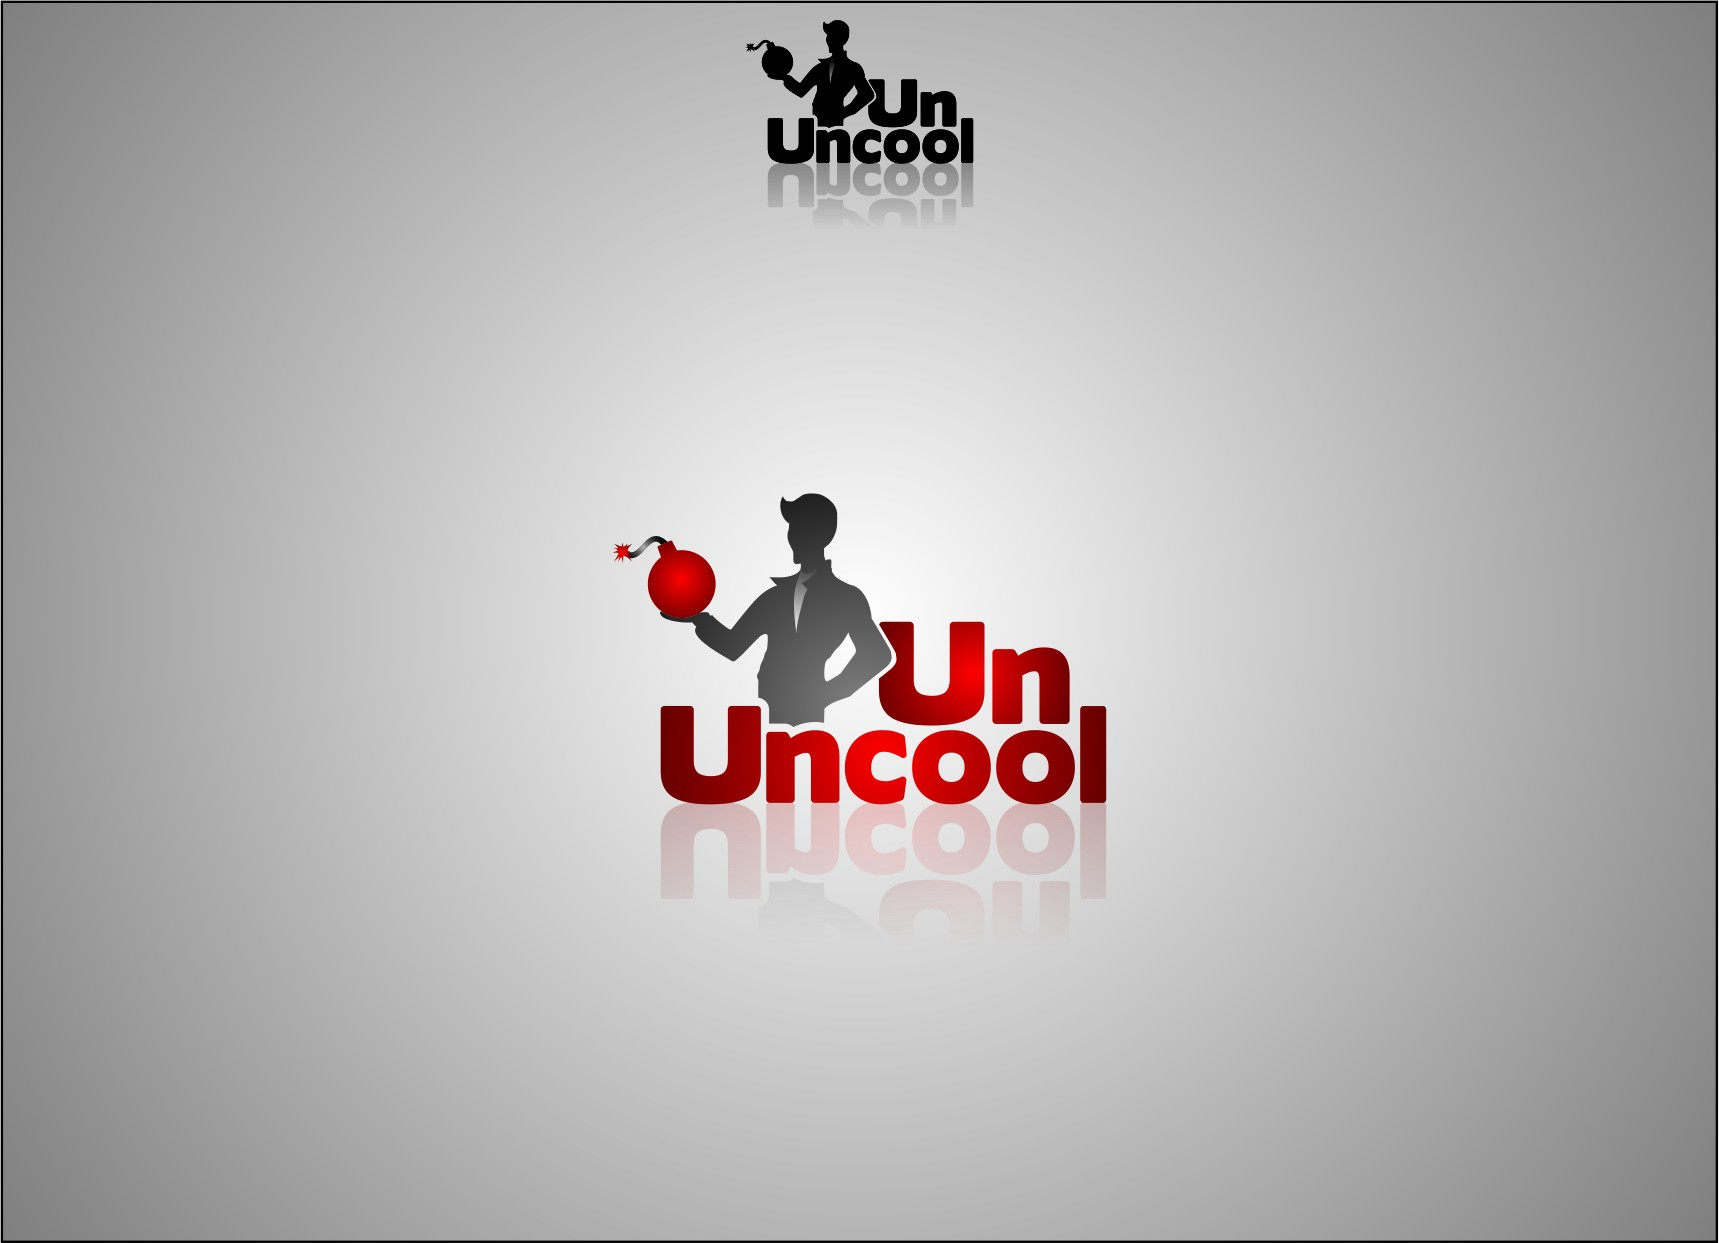 New logo wanted for UnUncool  (Un-Uncool)